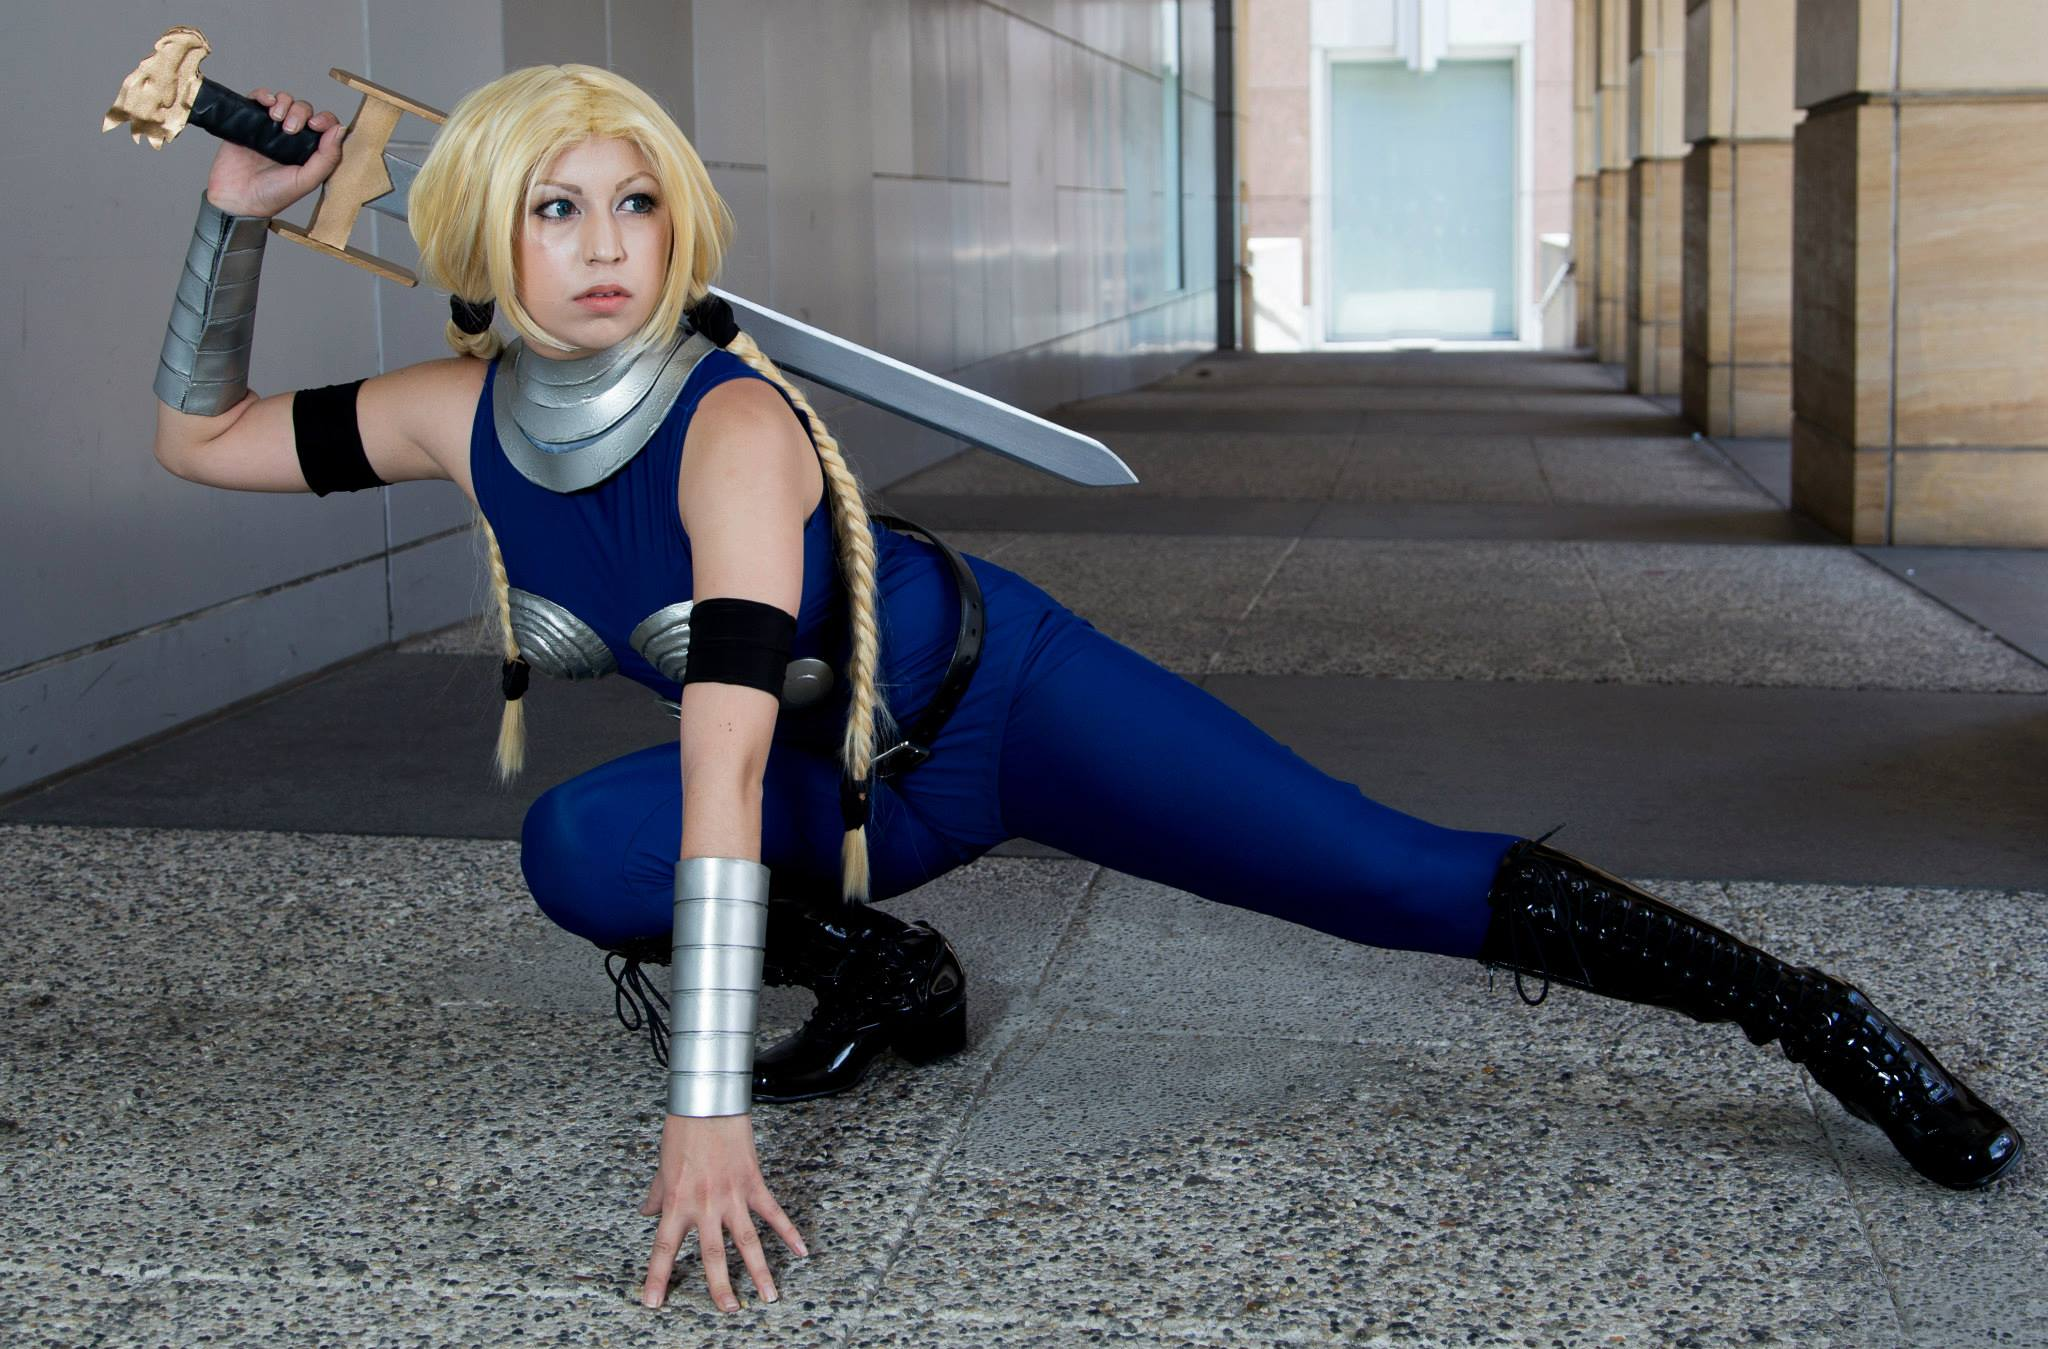 valkyrie marvel costume - photo #18